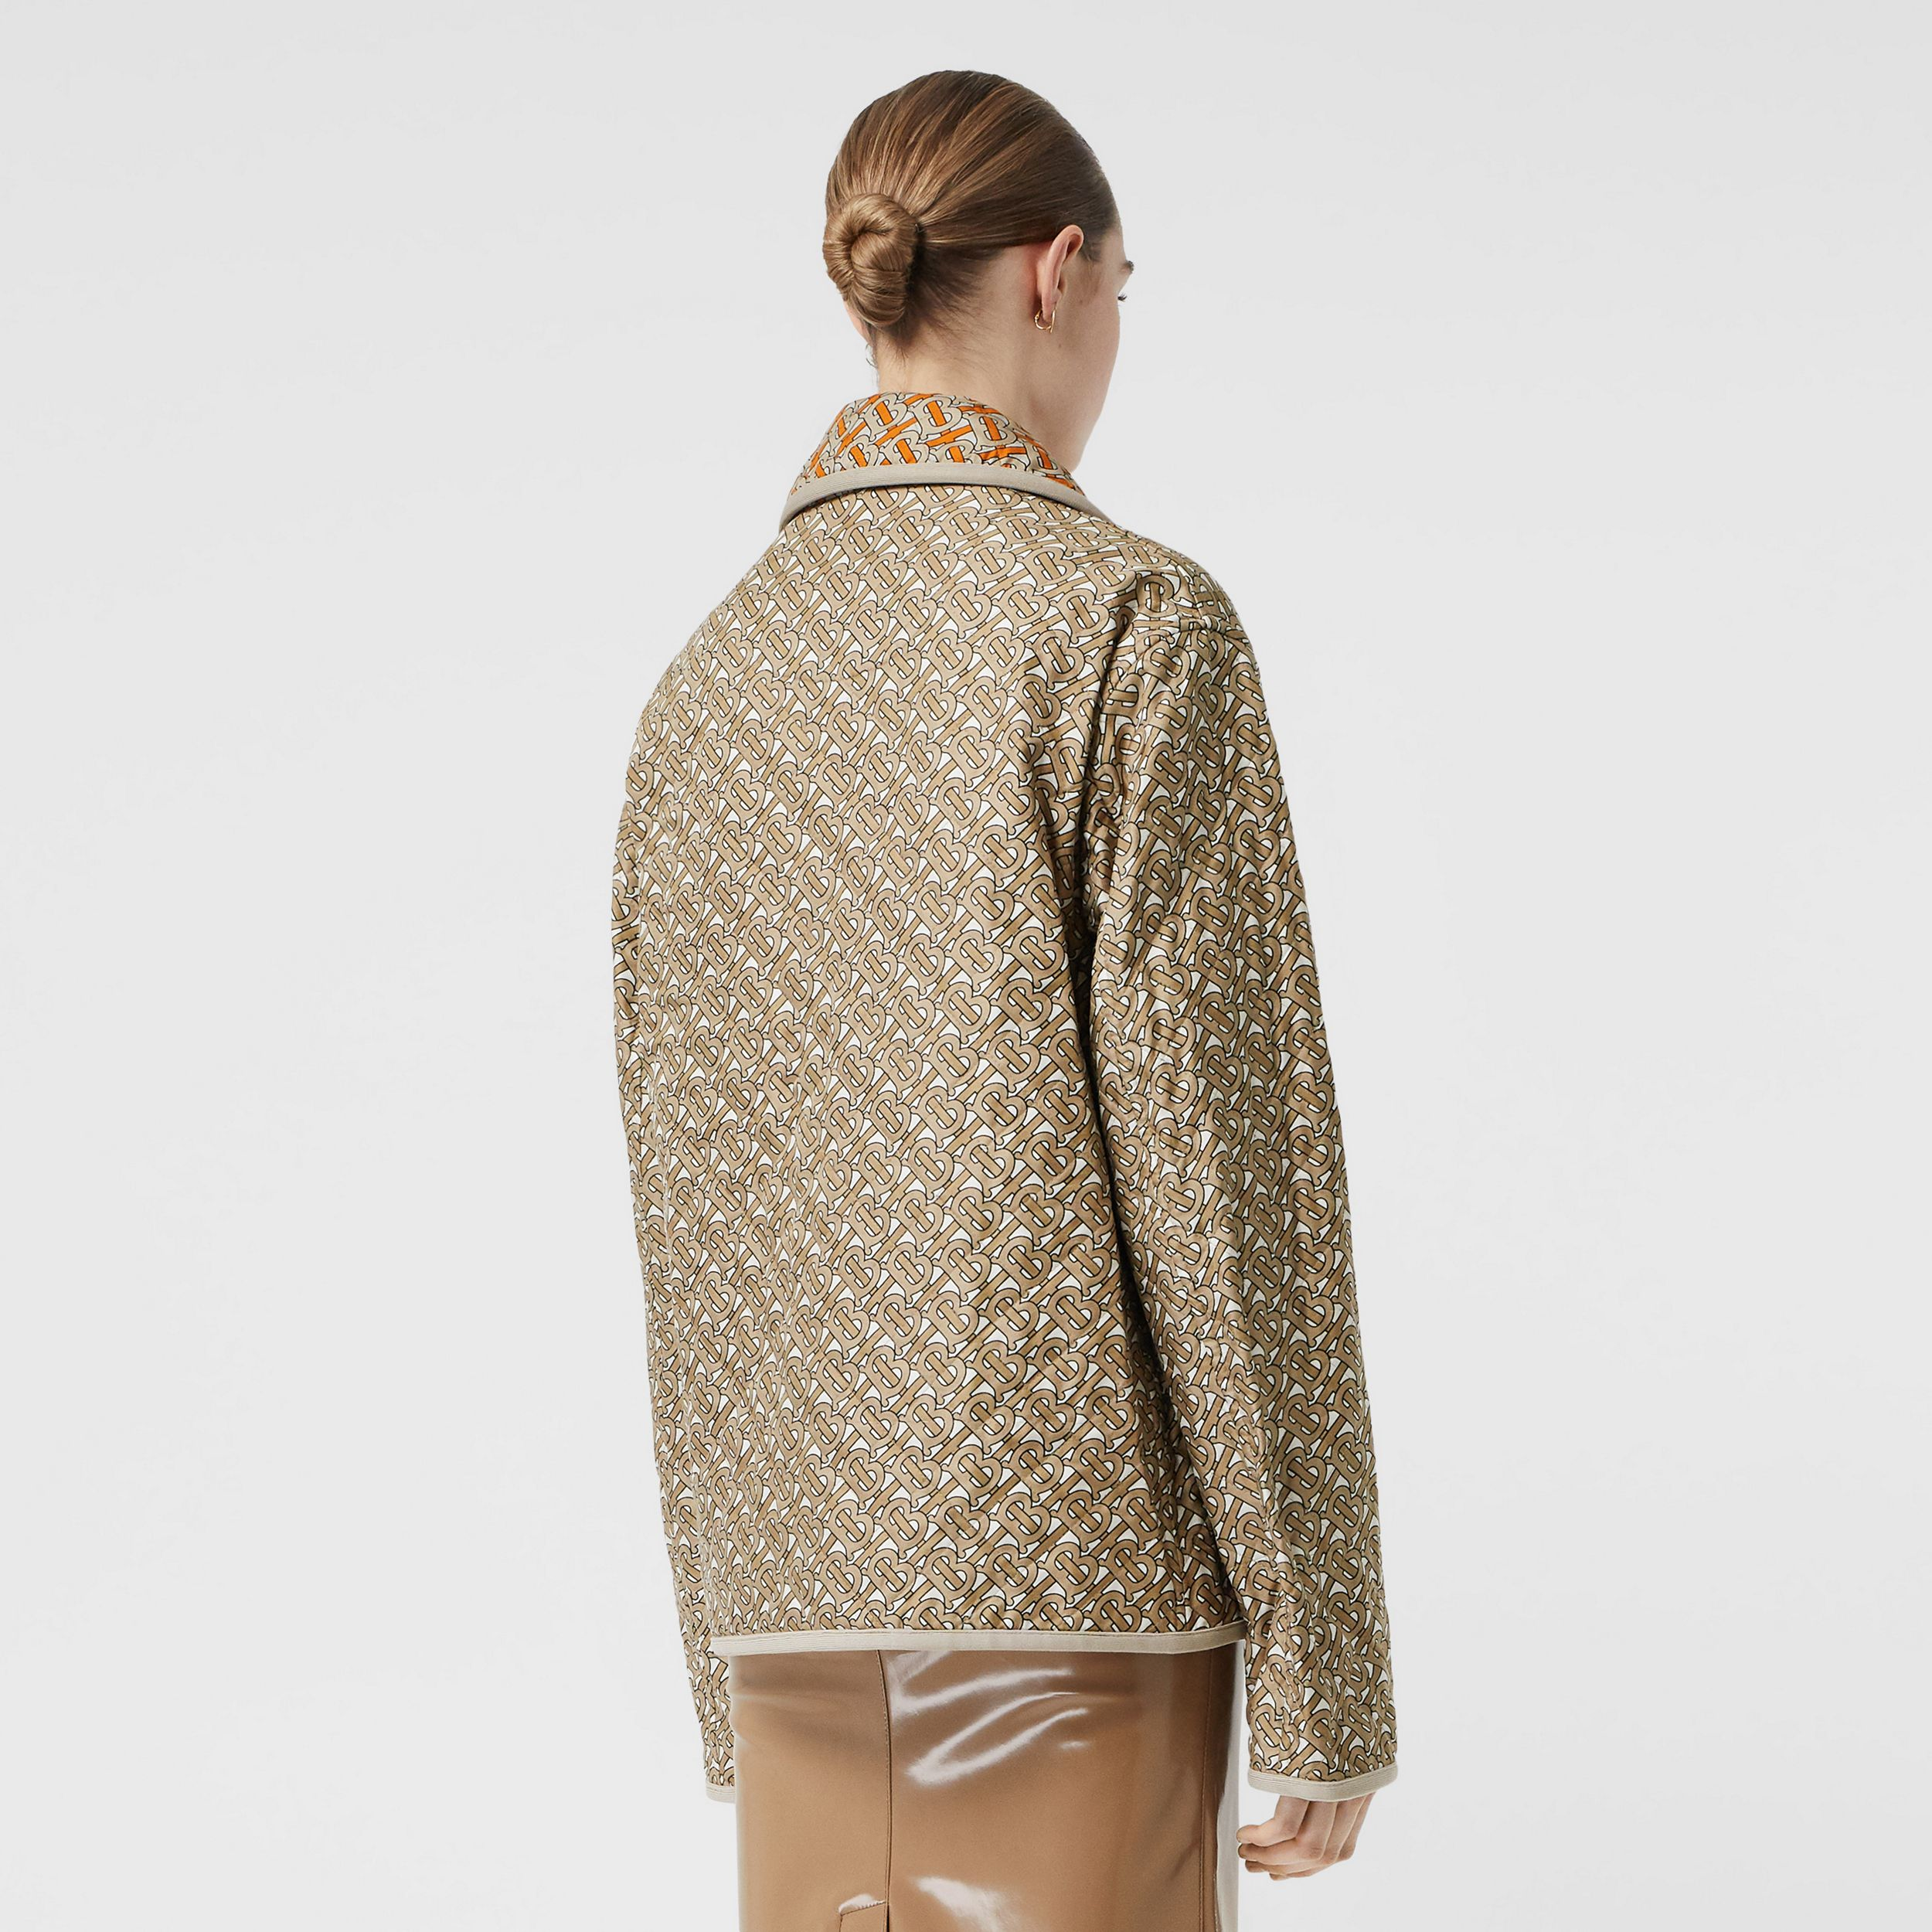 Monogram Print Quilted Silk Jacket in Archive Beige | Burberry - 3